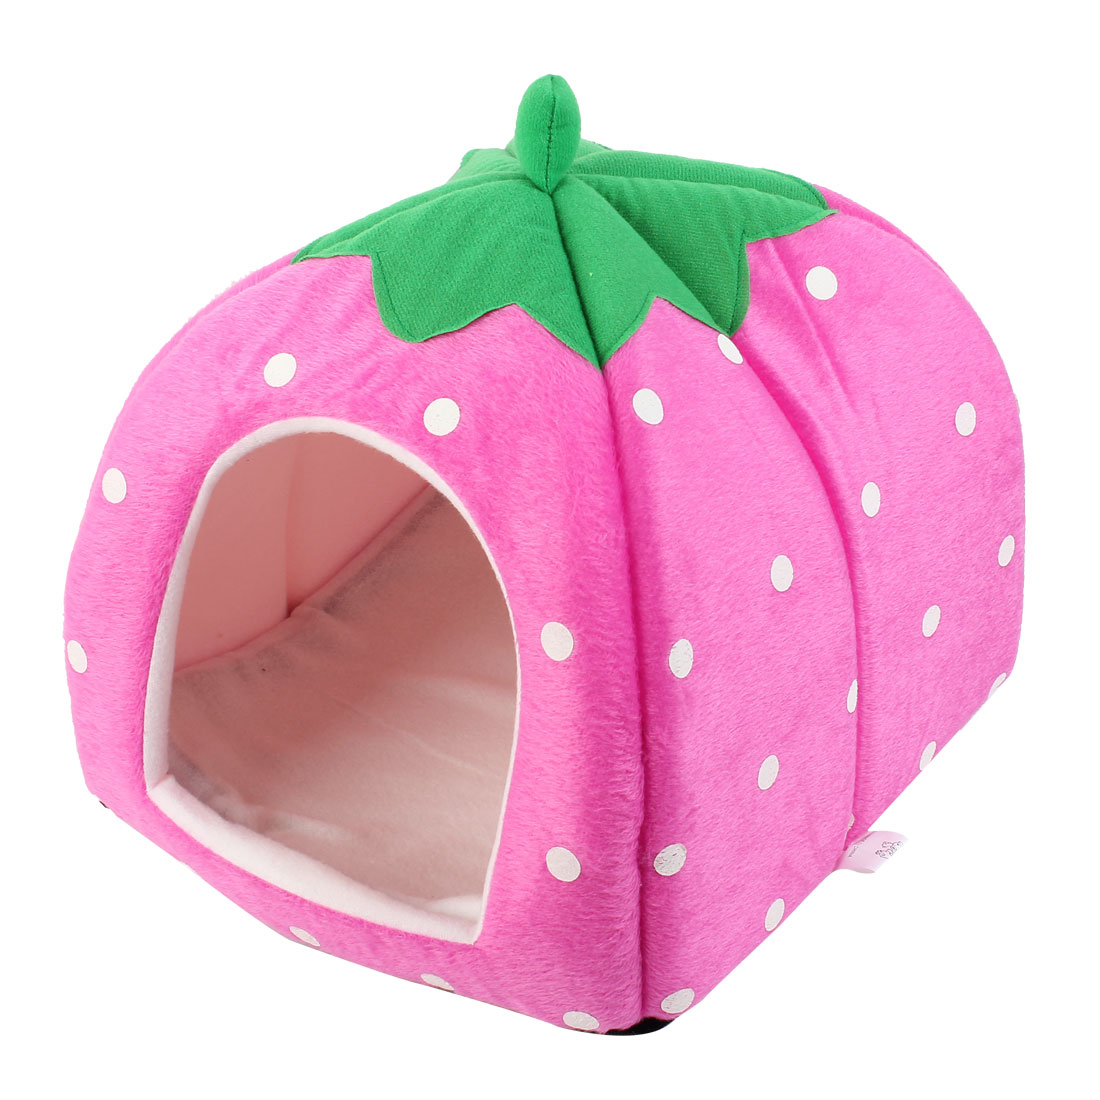 40cm Unfold Height Fuchsia Dots Pattern Folding Kennel Pet Cat Dog House